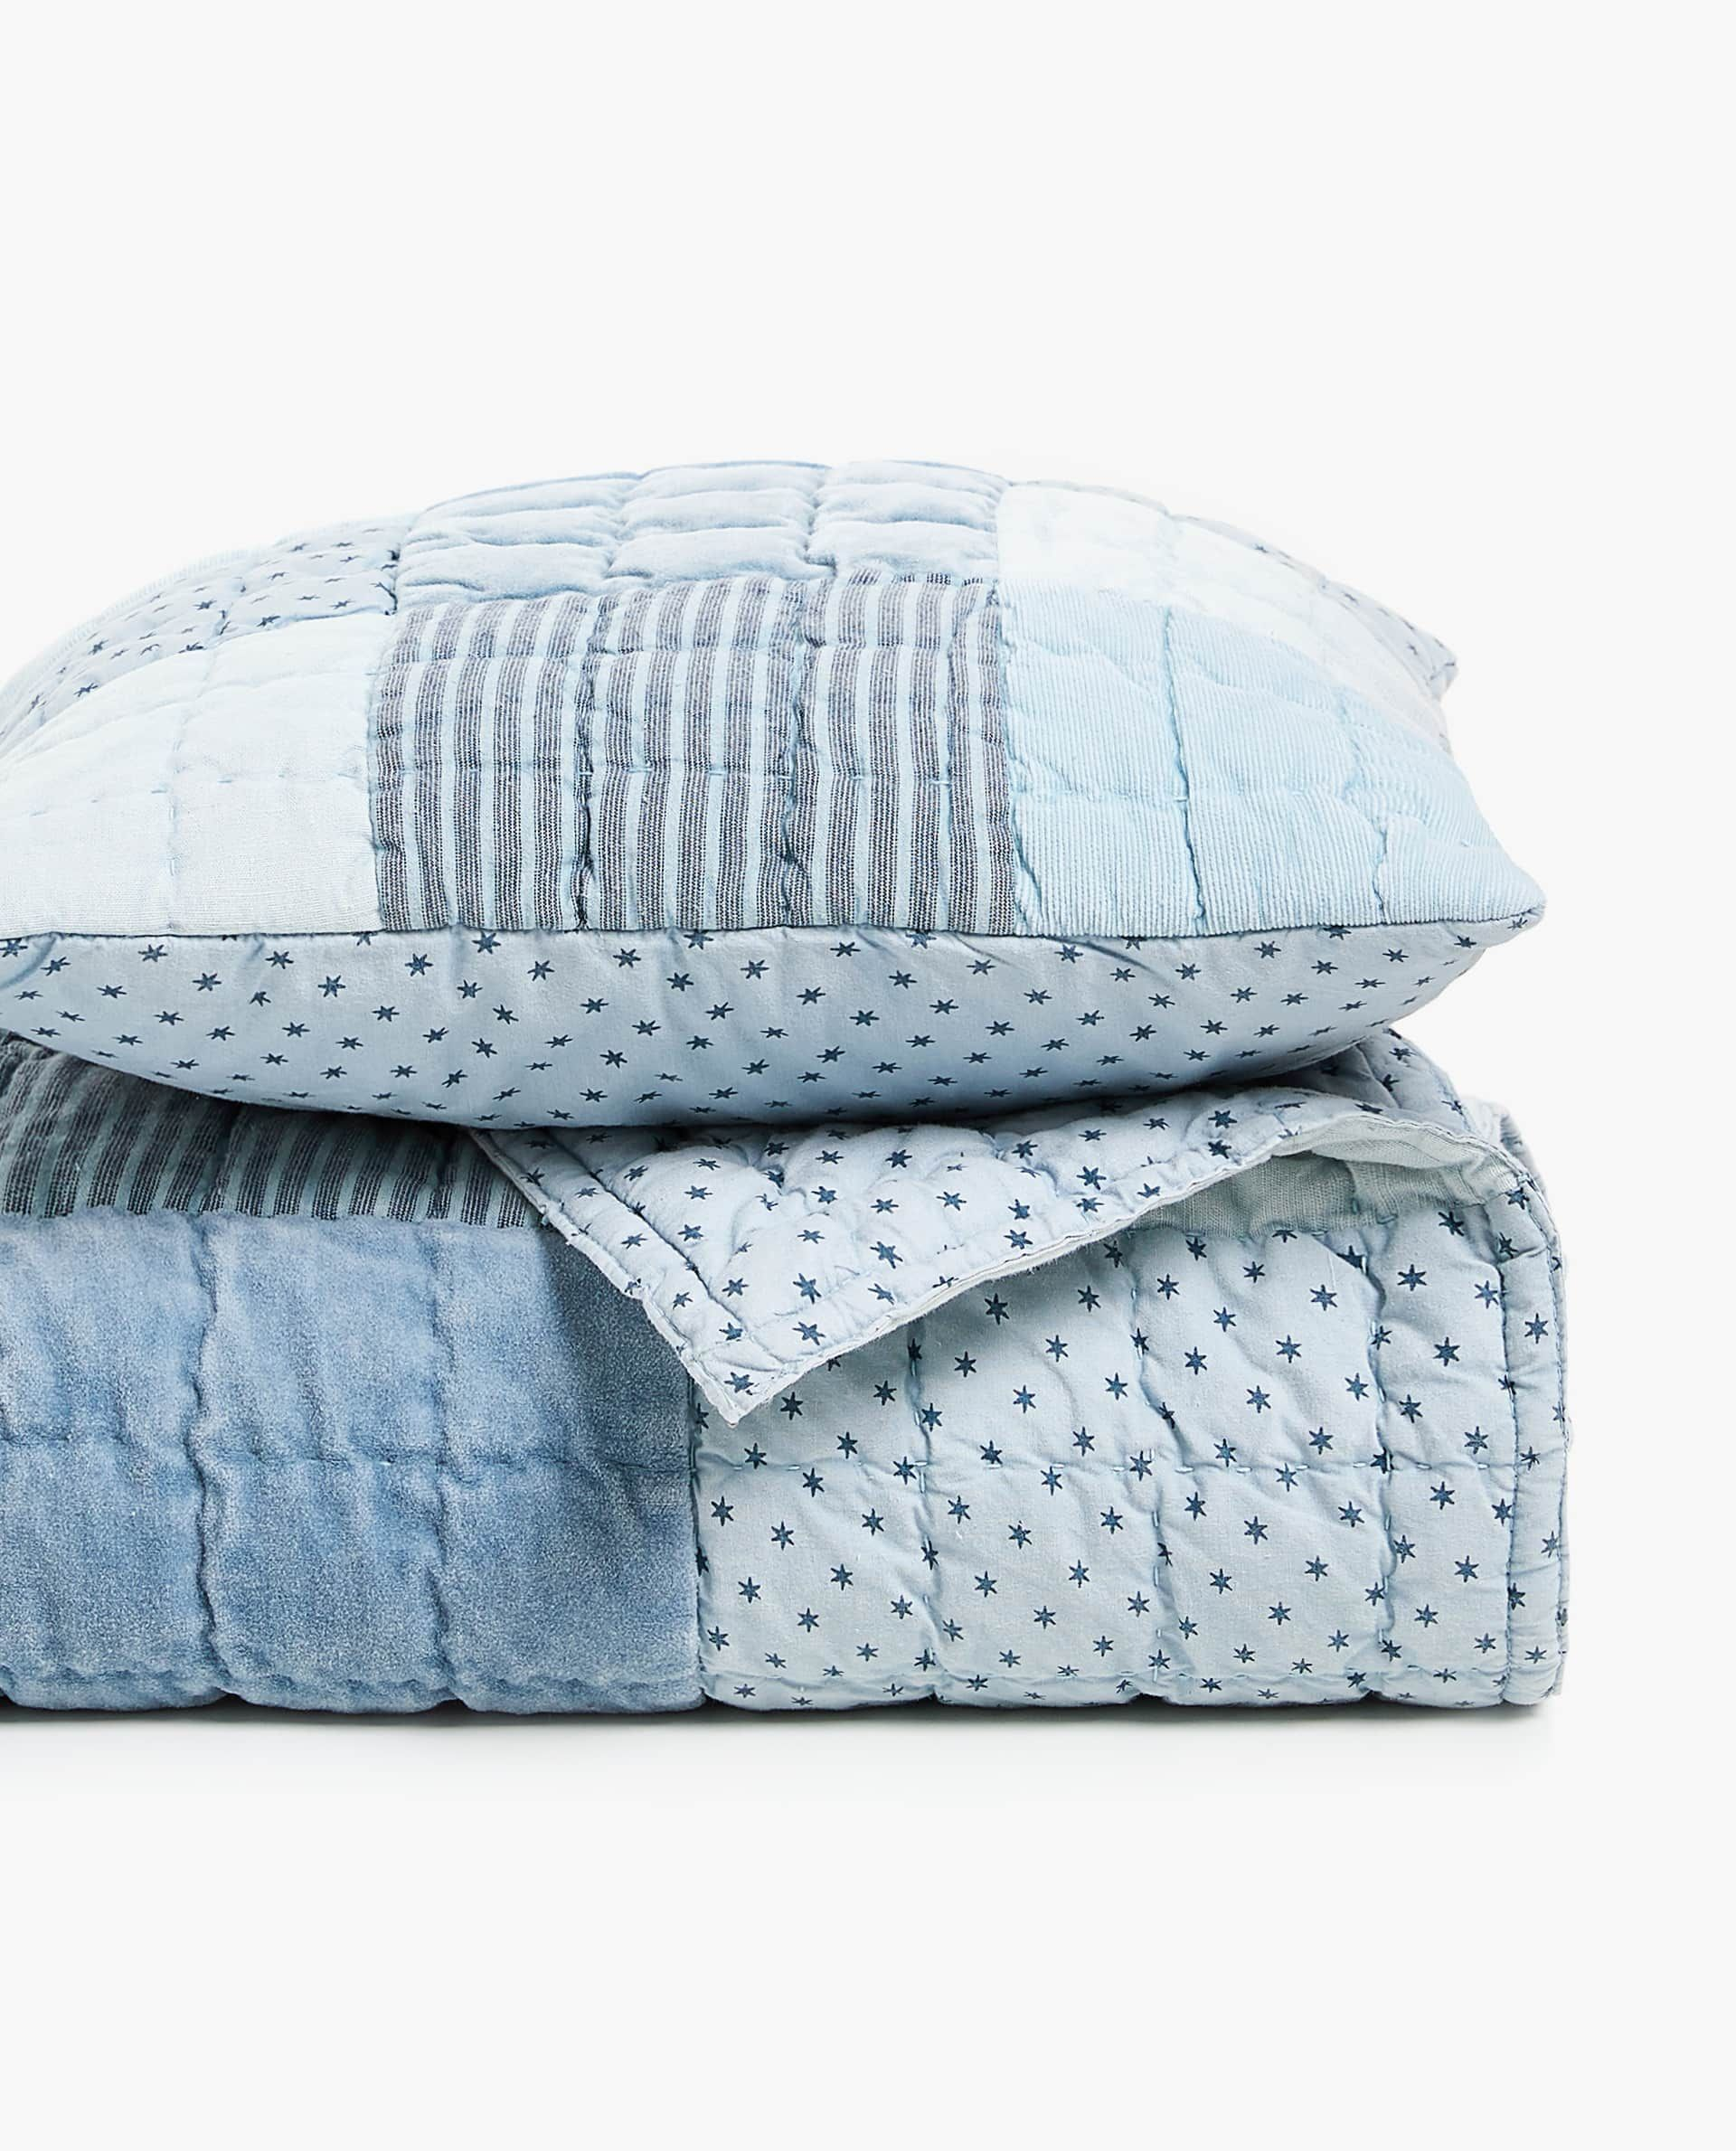 BLUE PATCHWORK QUILT | Zara home, Kids bedtime, Patchwork ...